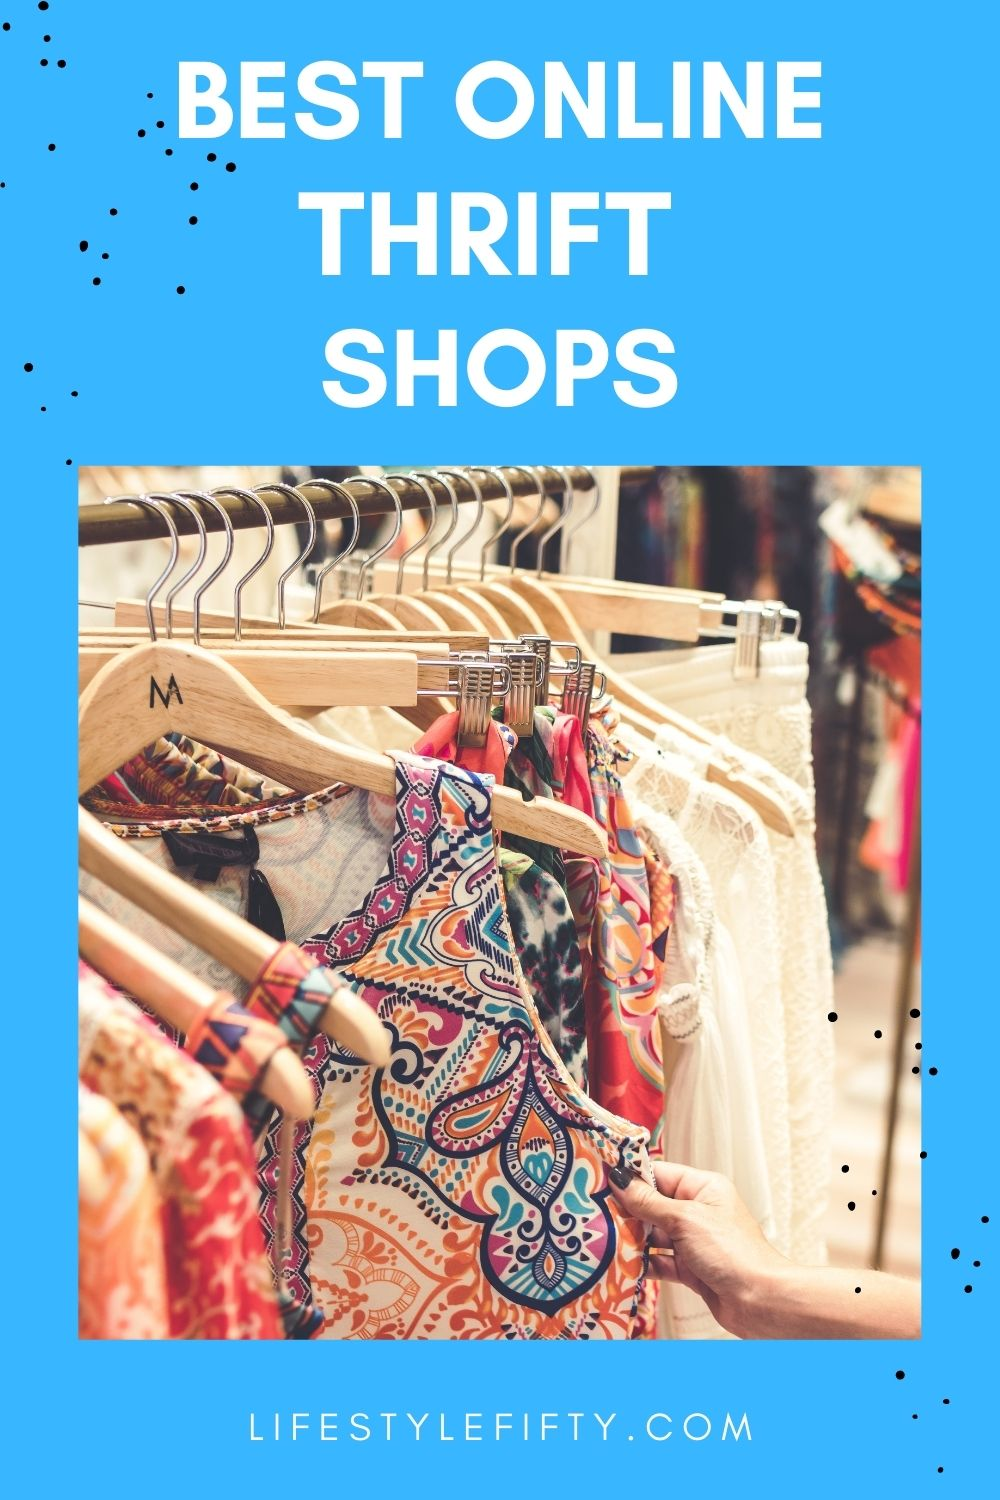 Best Online Thrift Shops and charity shops - image of hanging clothes - white text on blue coloured background